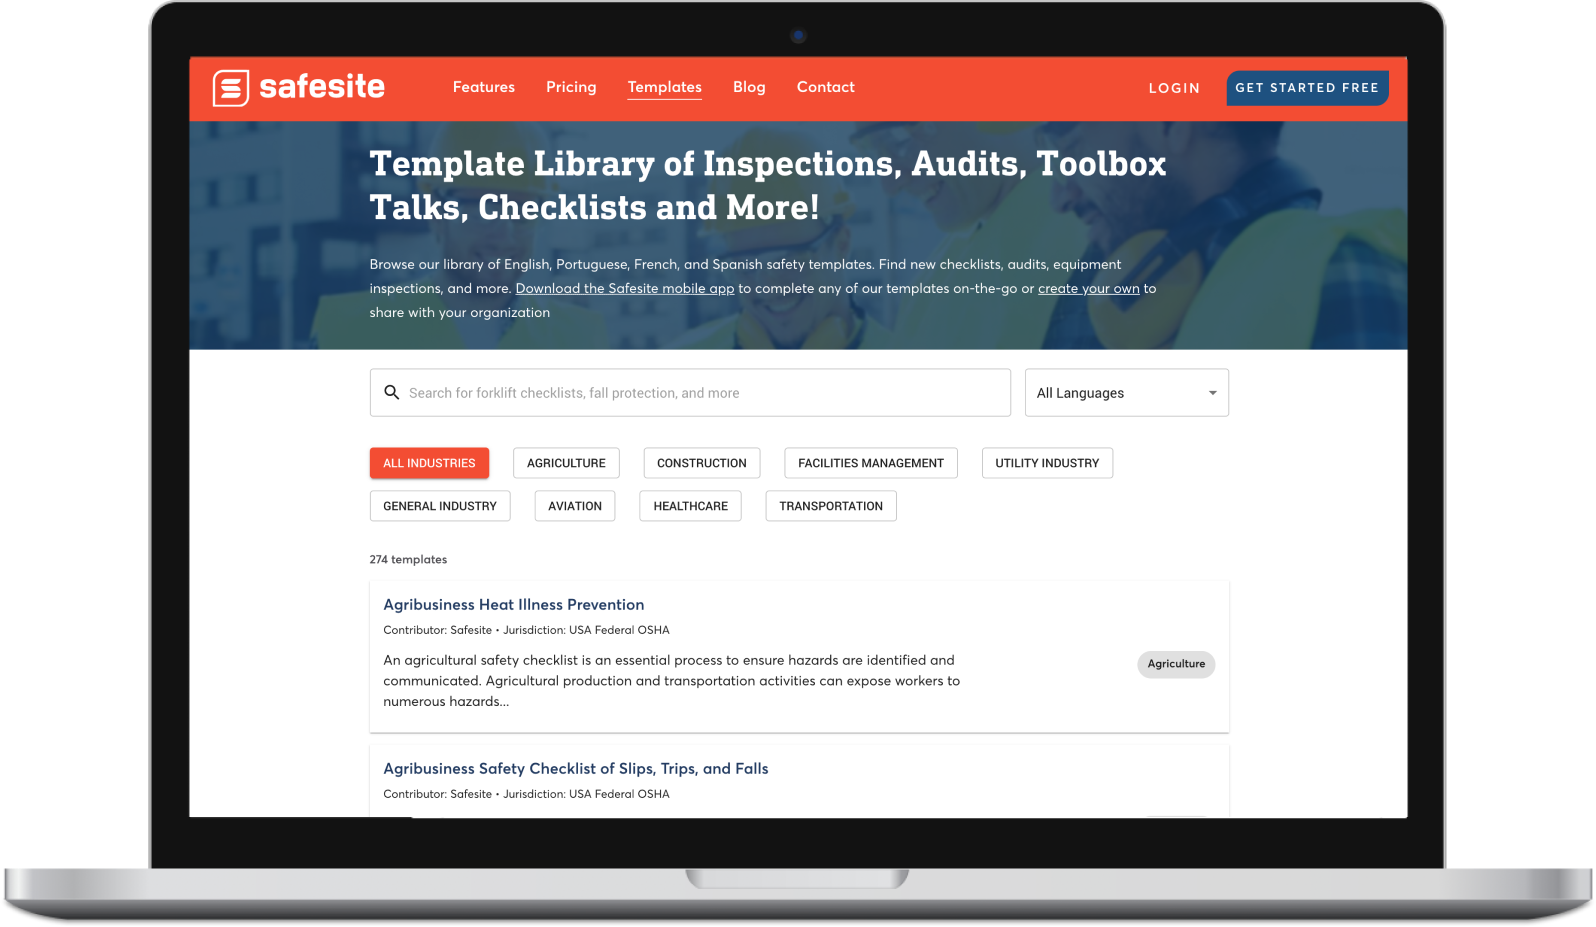 Public Template Library